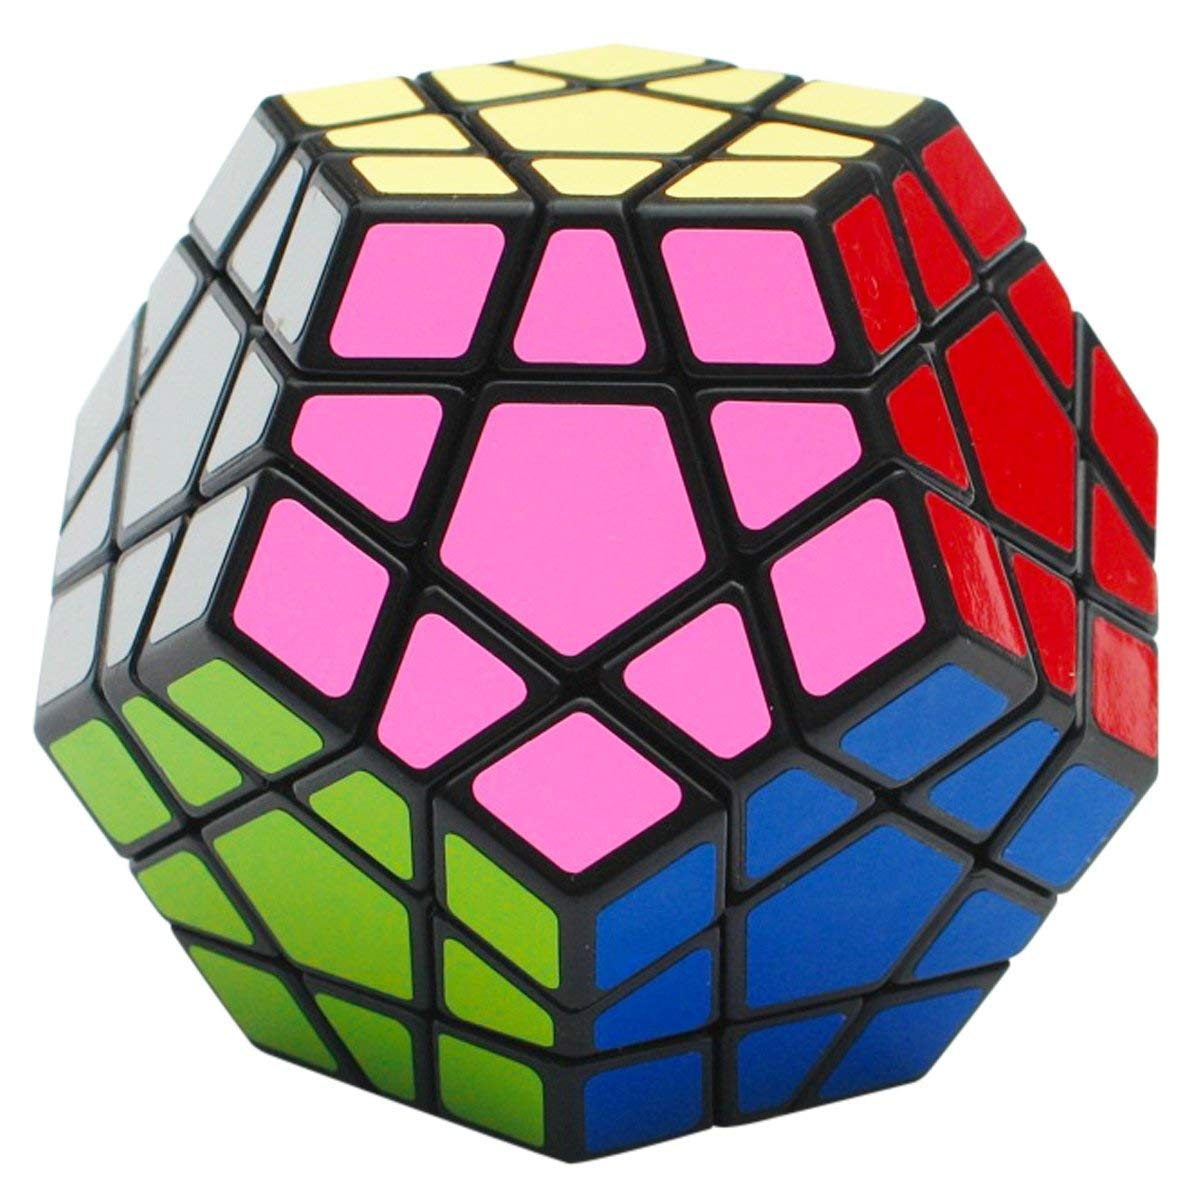 High Quantity Shengshou Megaminx Puzzle Speed Dodecahedron Smooth Puzzle Cube Color Black/white Special Toy Free Shipping Factory Direct Selling Price Magic Cubes